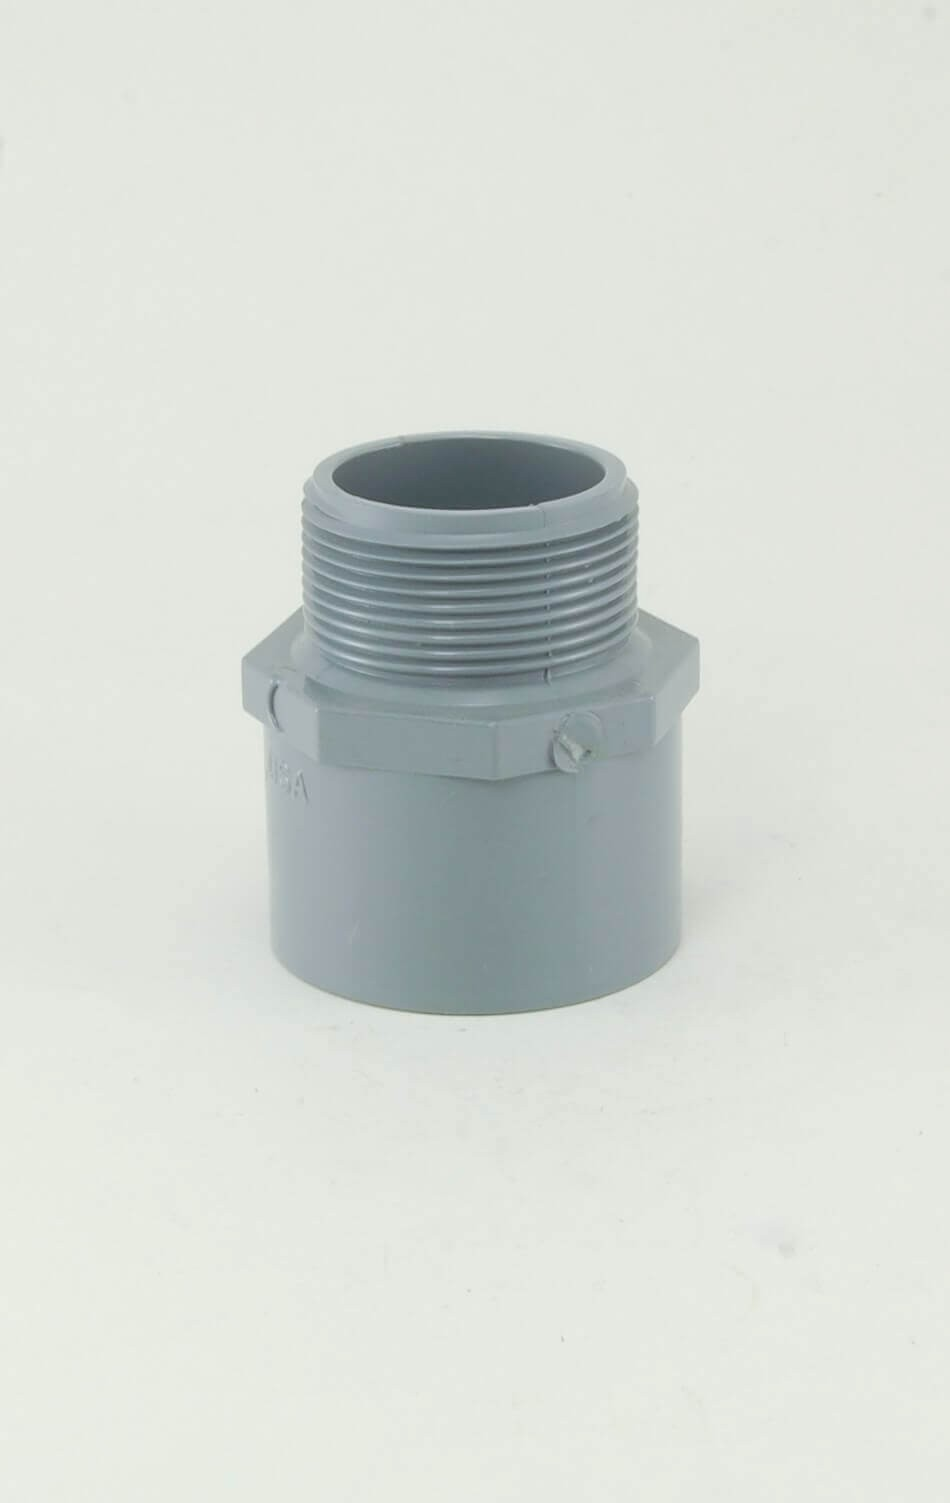 Sch grey cpvc coupling s schedule fittings